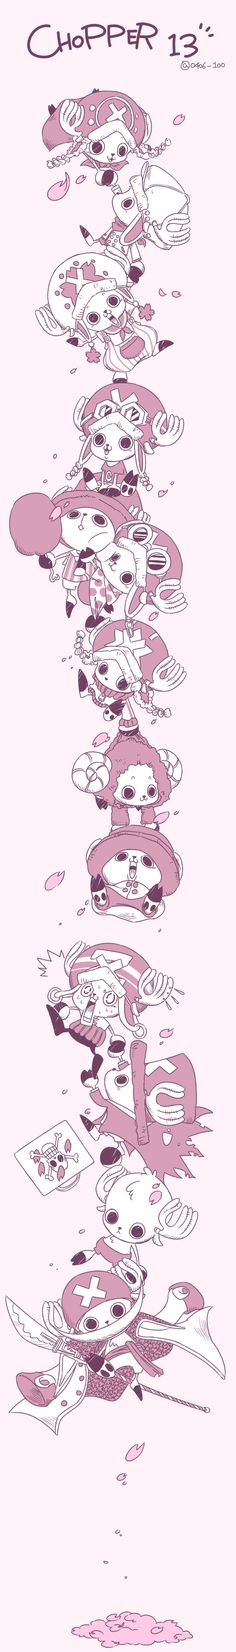 TonyTony Chopper. Cutest character ever!!